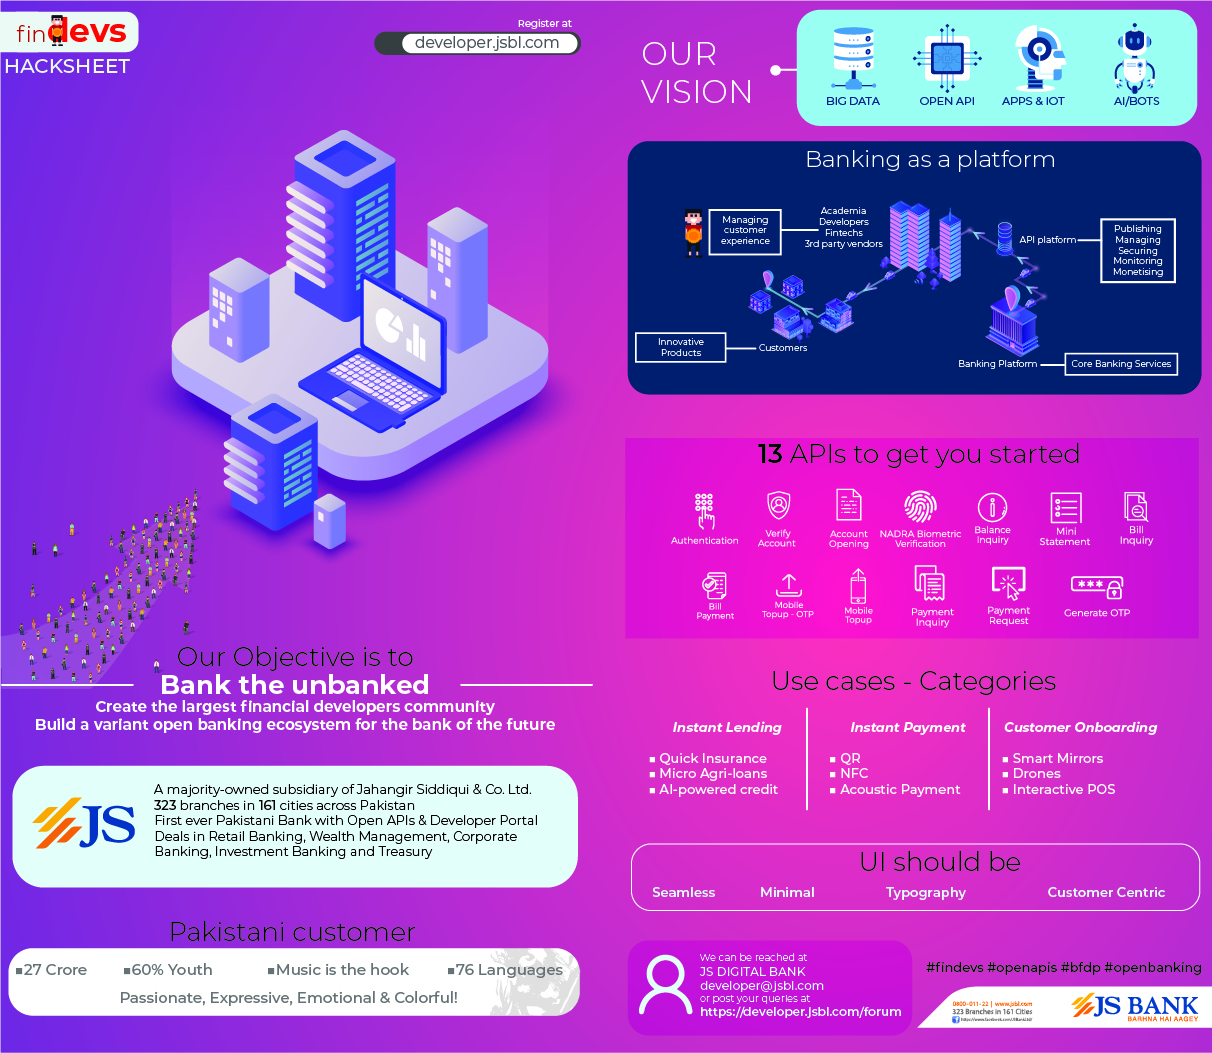 JS Bank is actively contributing to the digital revolution in the banking industry of Pakistan by taking initiatives involving major stakeholders. JS Bank has now taken up a new challenge which is to empower Fintech entrepreneurs and financial inclusion.